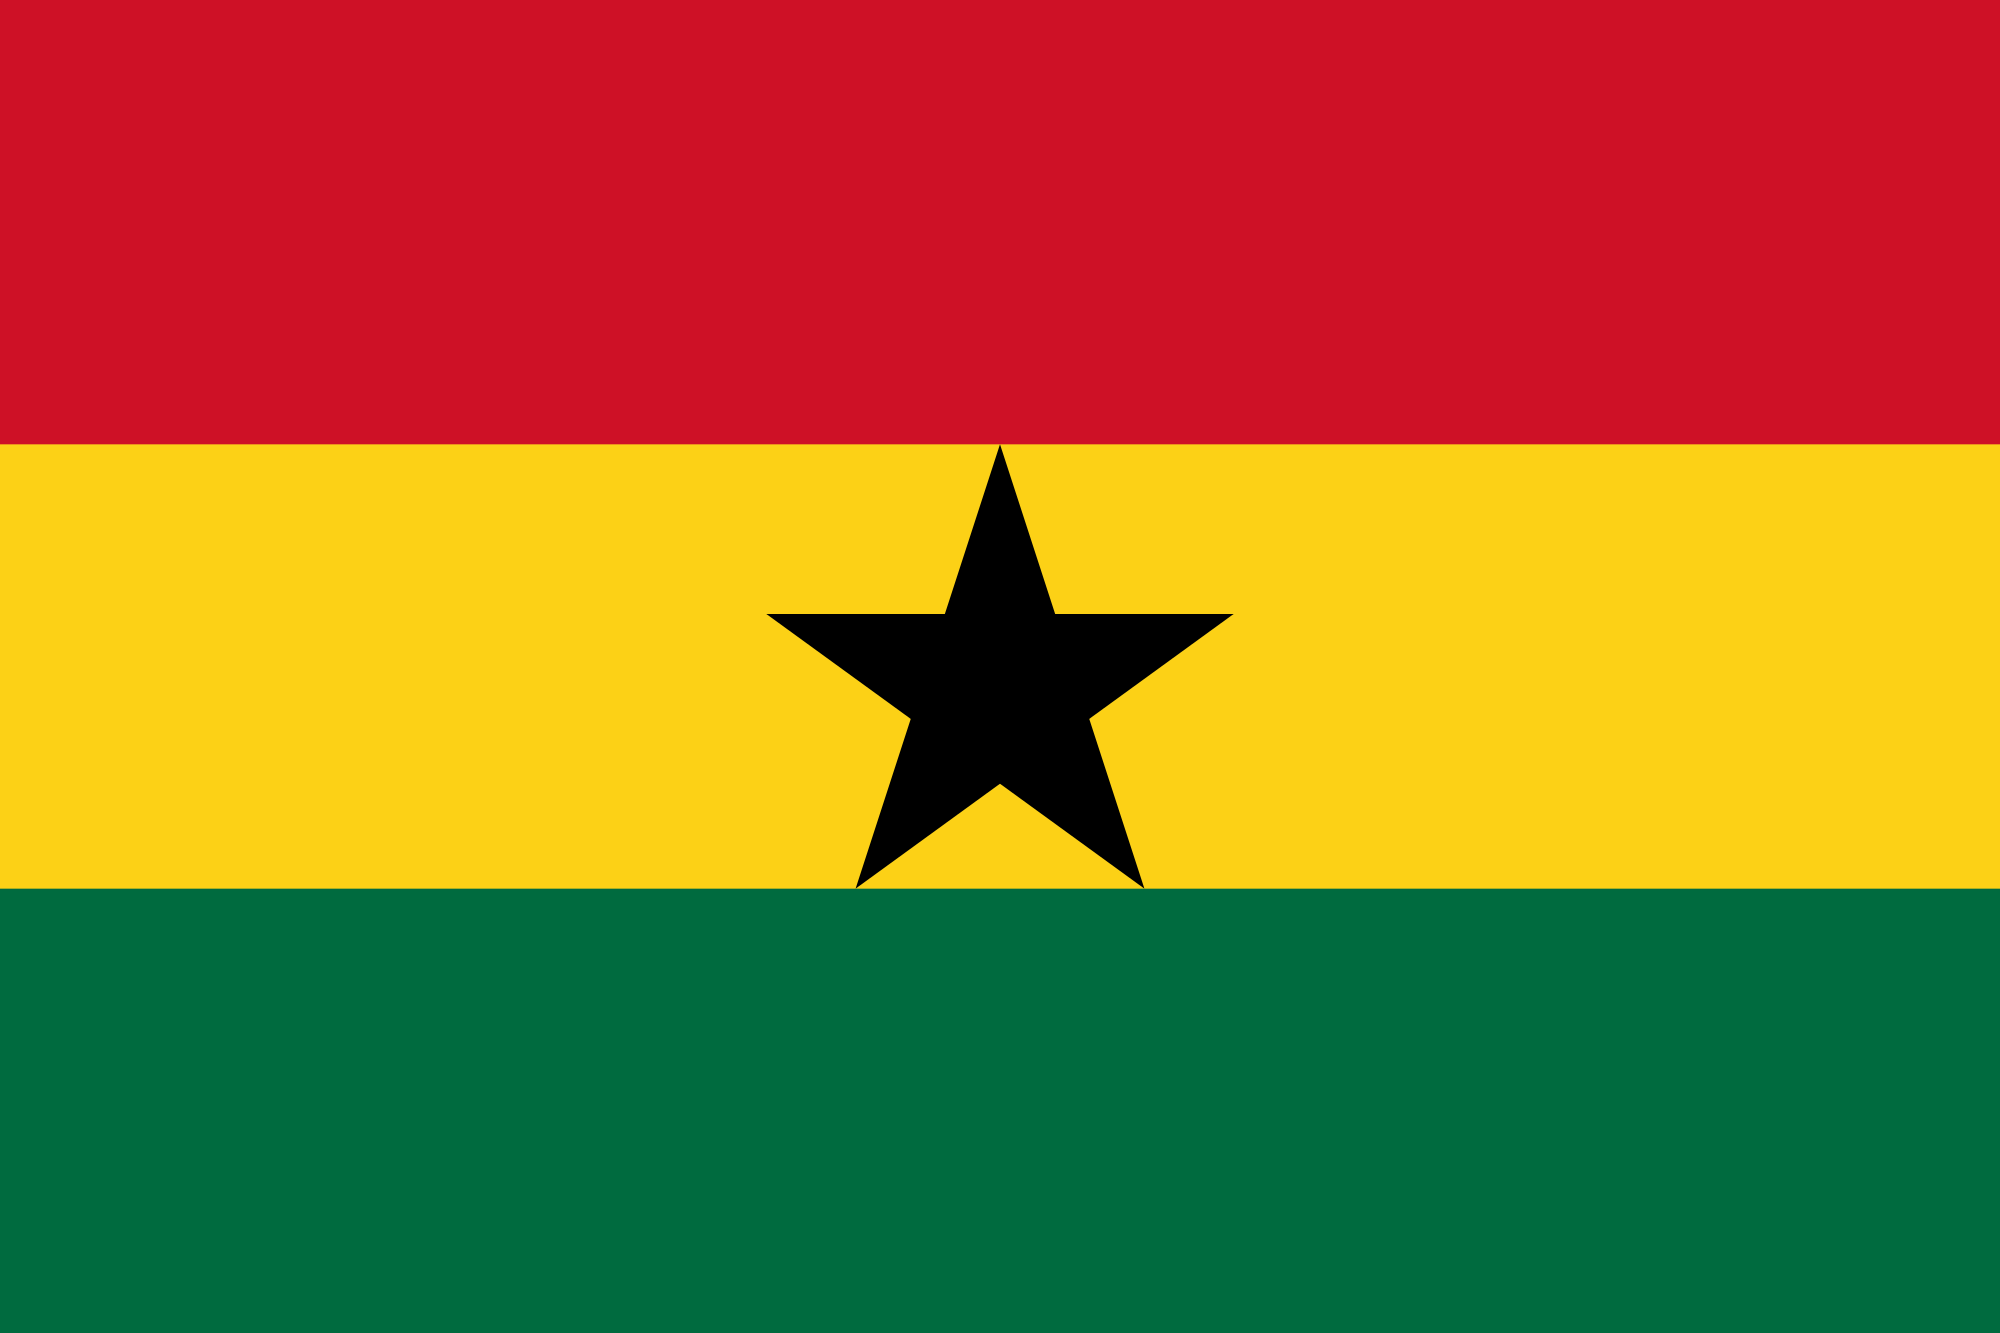 Flag Of Ghana Backgrounds, Compatible - PC, Mobile, Gadgets| 2000x1333 px